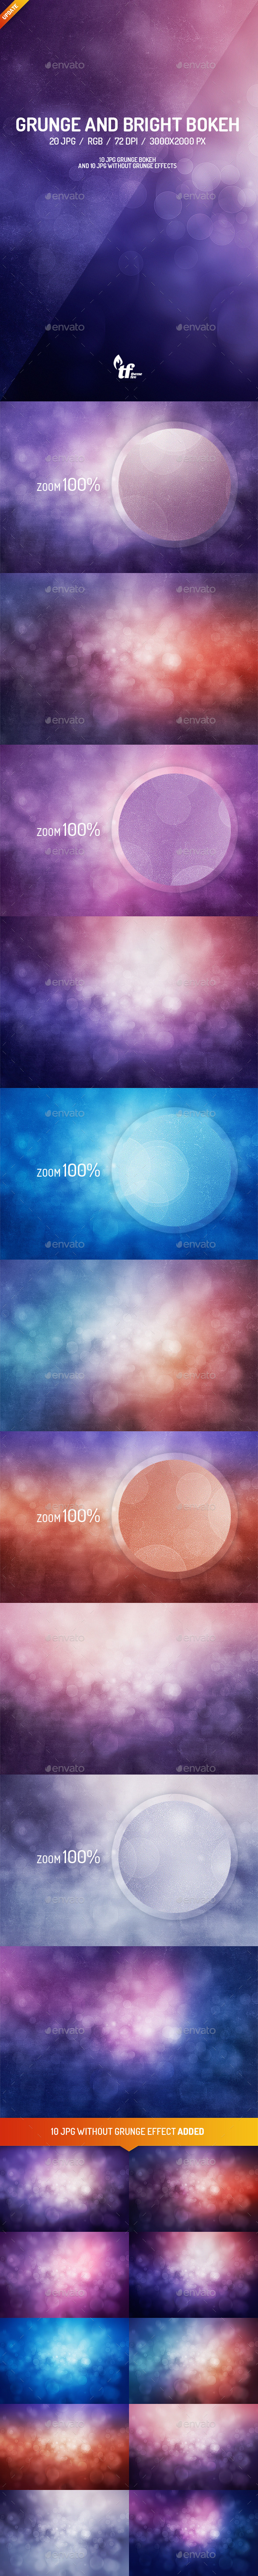 GraphicRiver 10 Grunge Bokeh Backgrounds 8988500